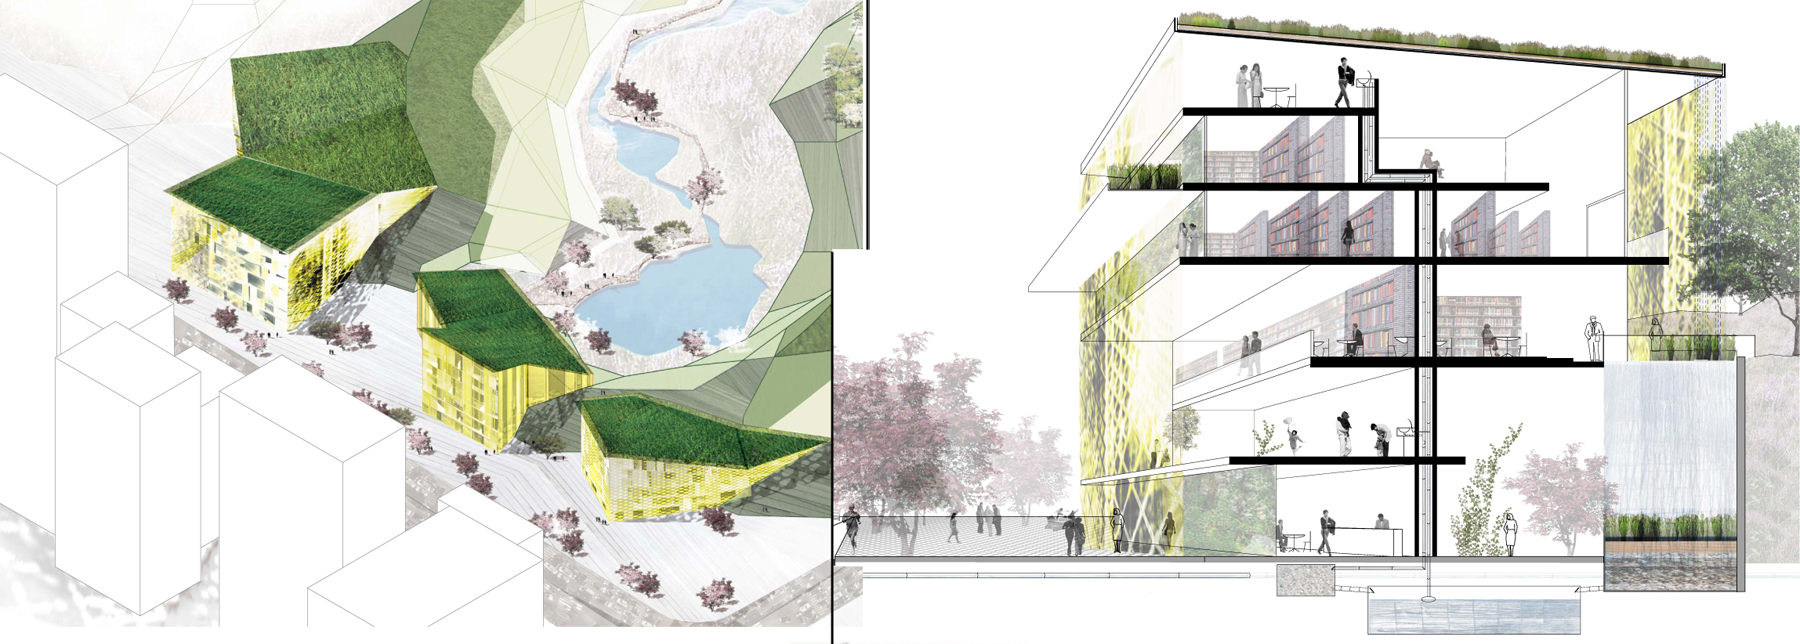 Urban Design ASBN Landscape Architecture And Gardens - Sustainable architecture design